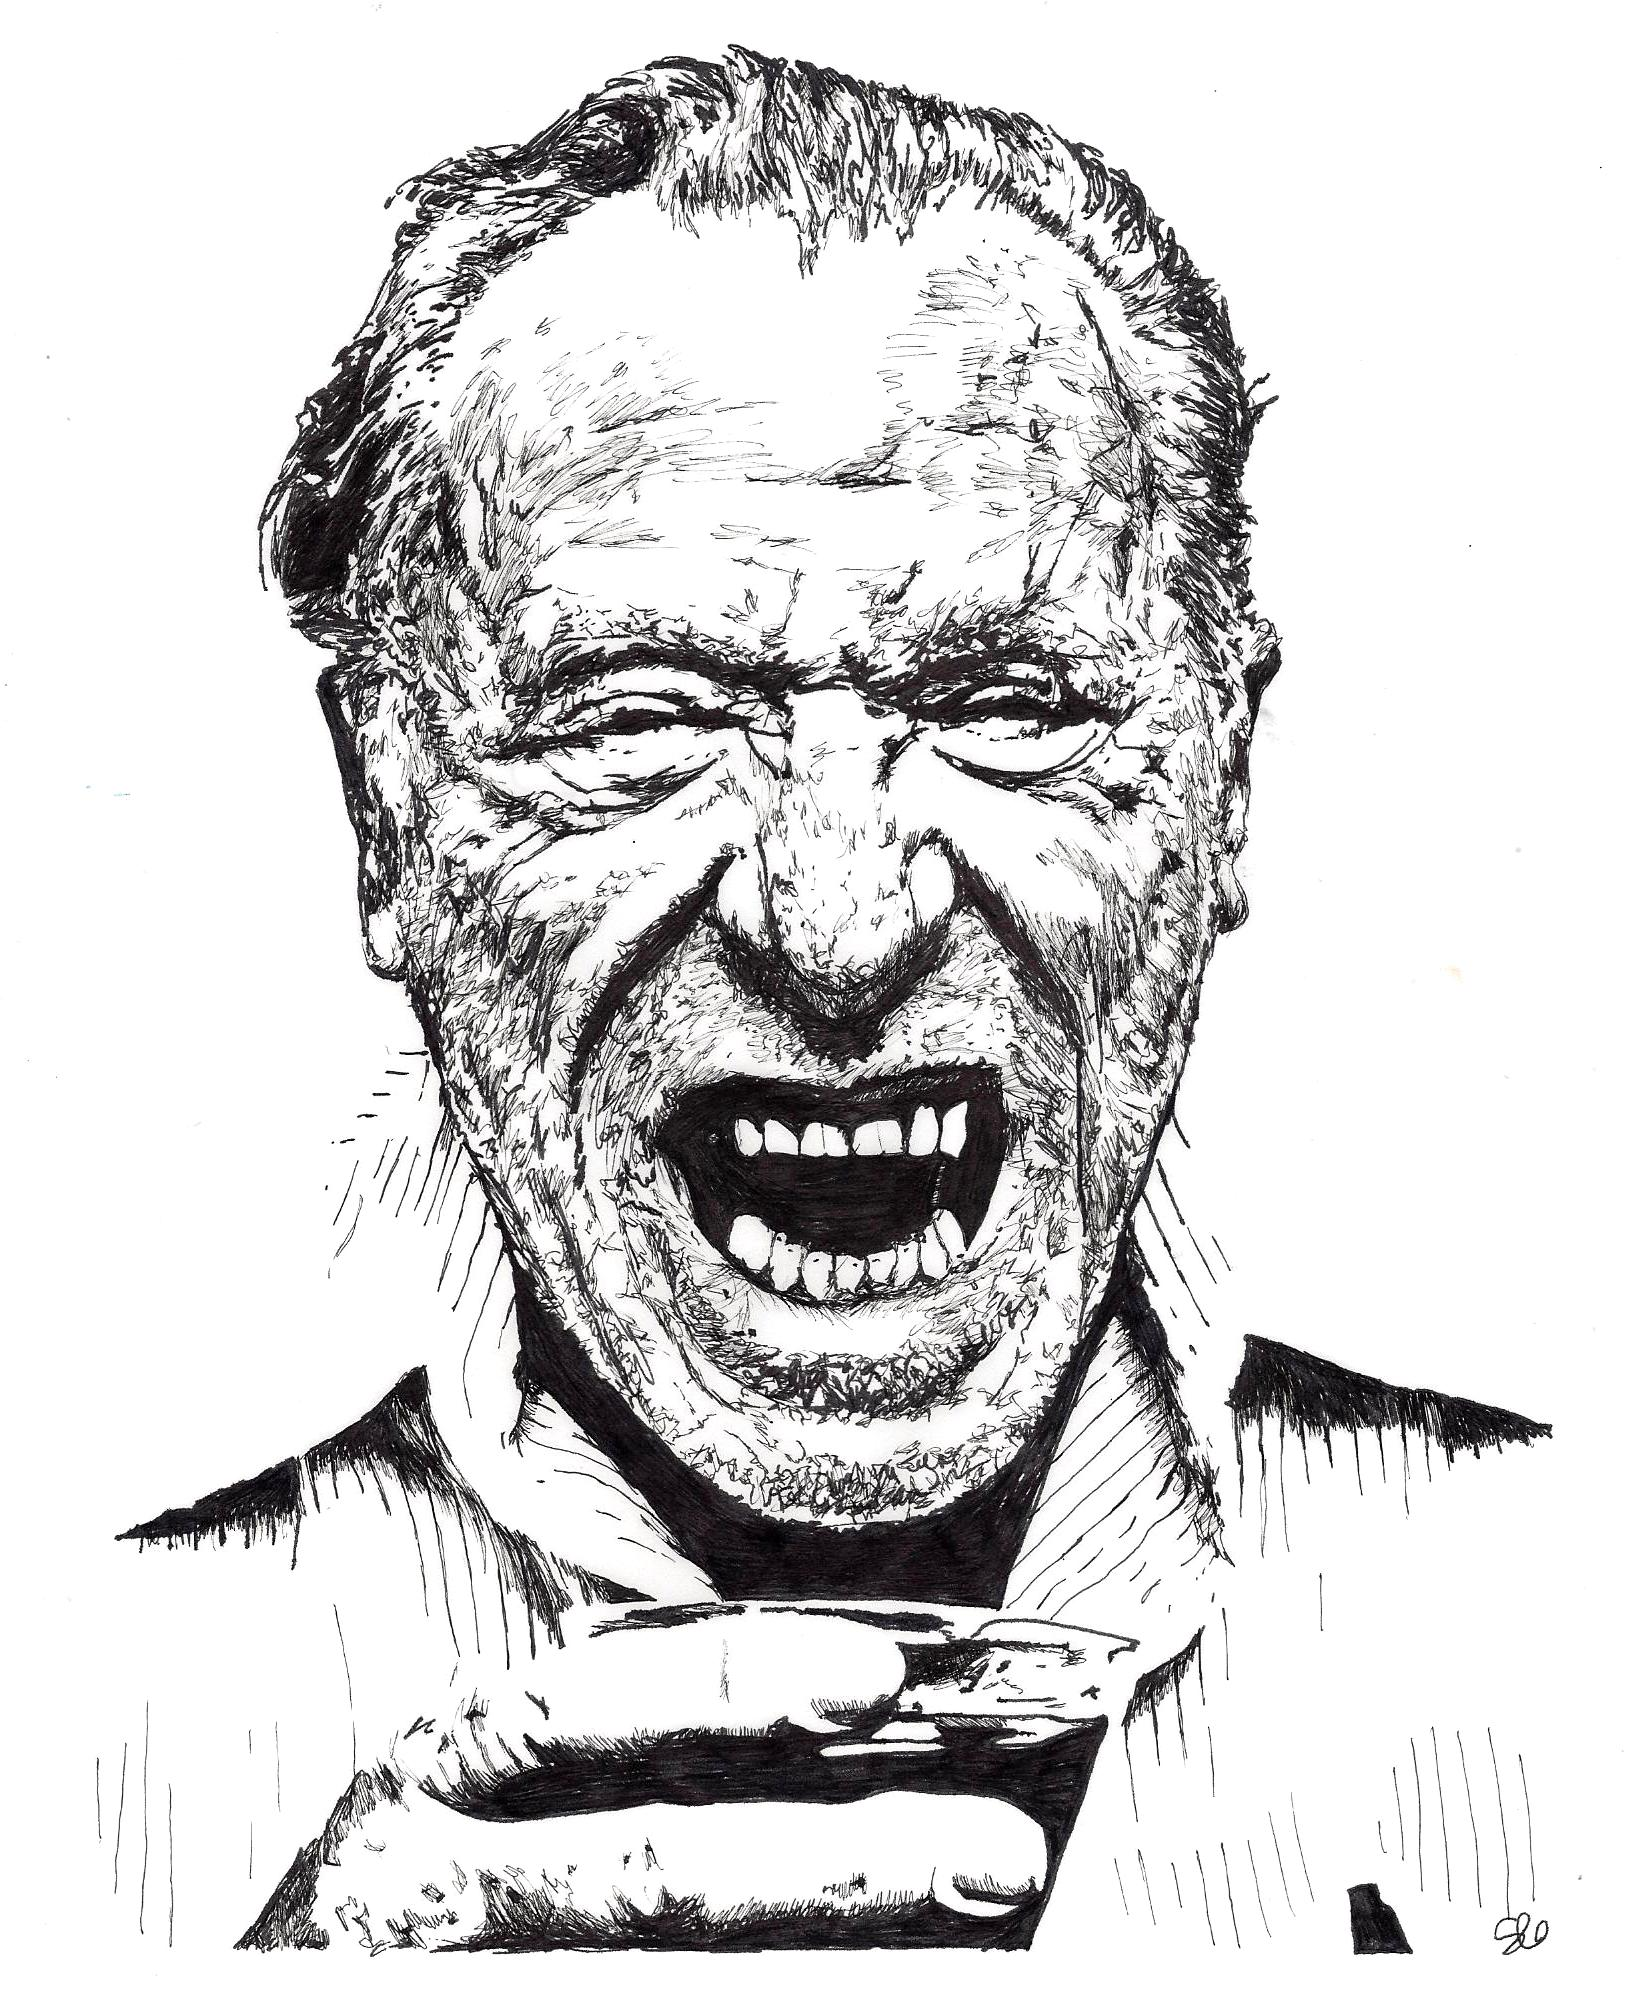 Charles Bukowski by Stevi Draws